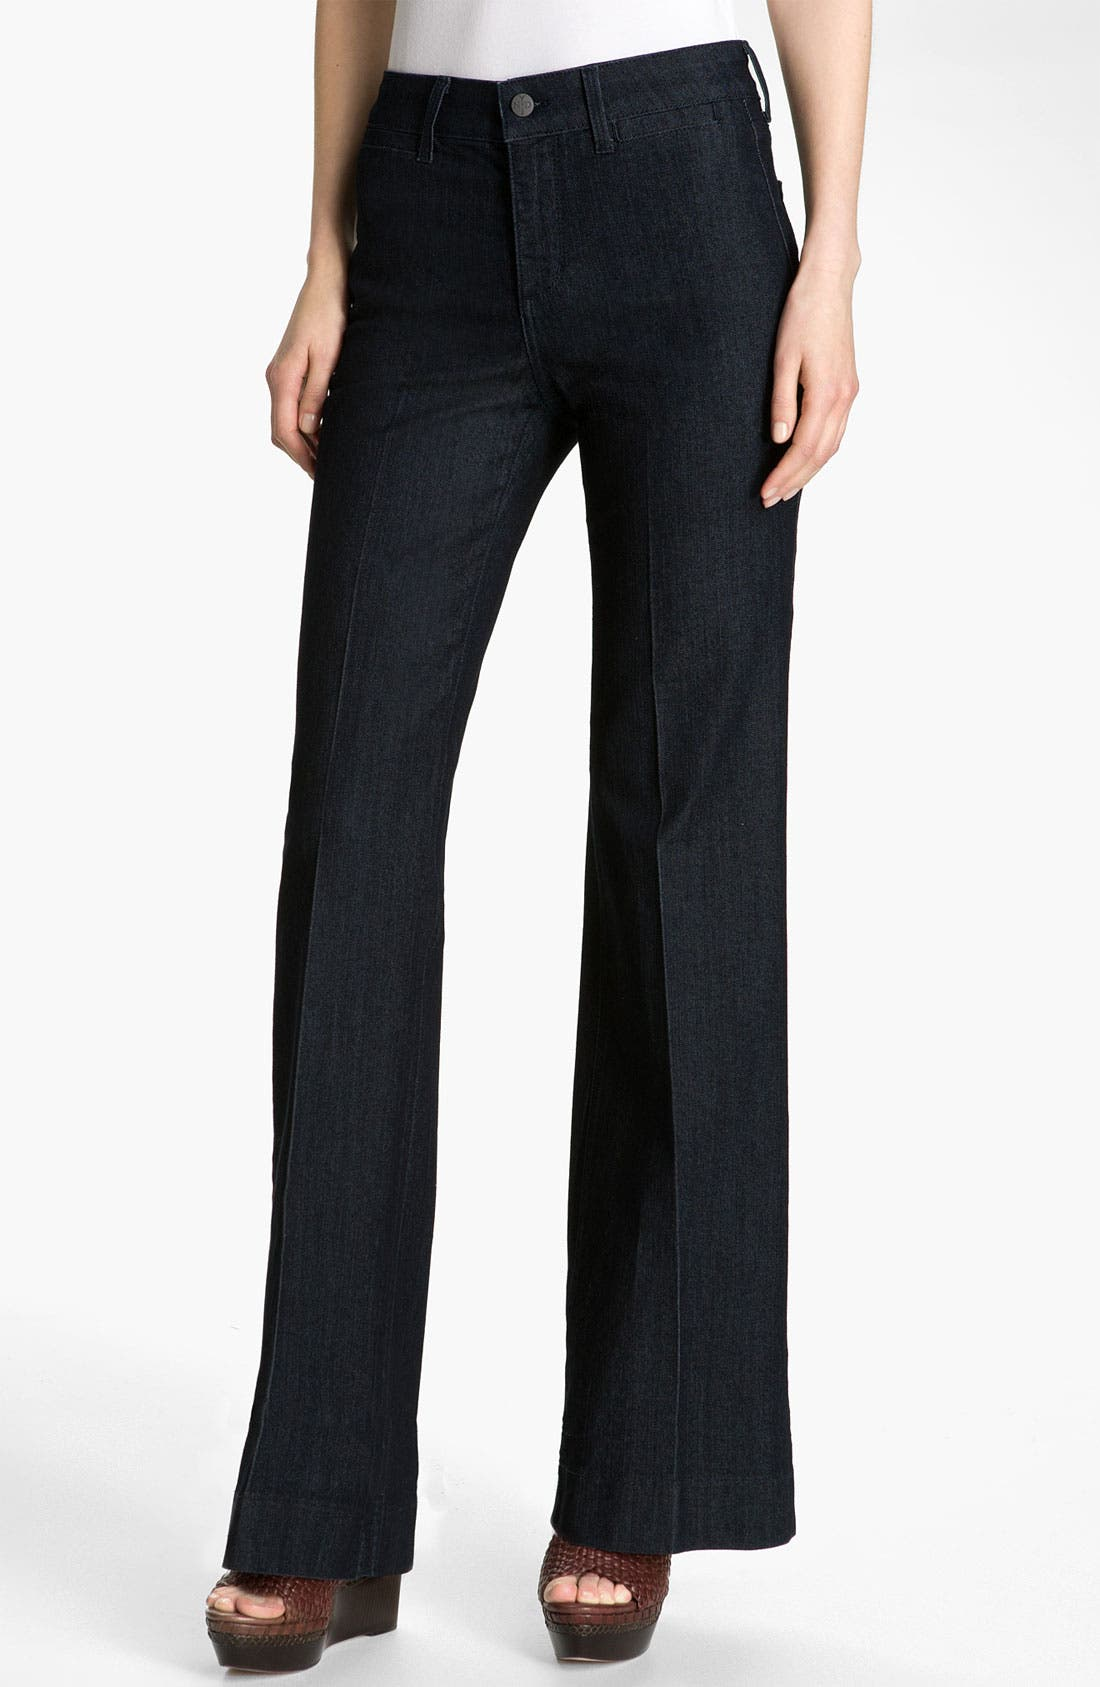 Alternate Image 1 Selected - NYDJ 'Greta' Trouser Jeans